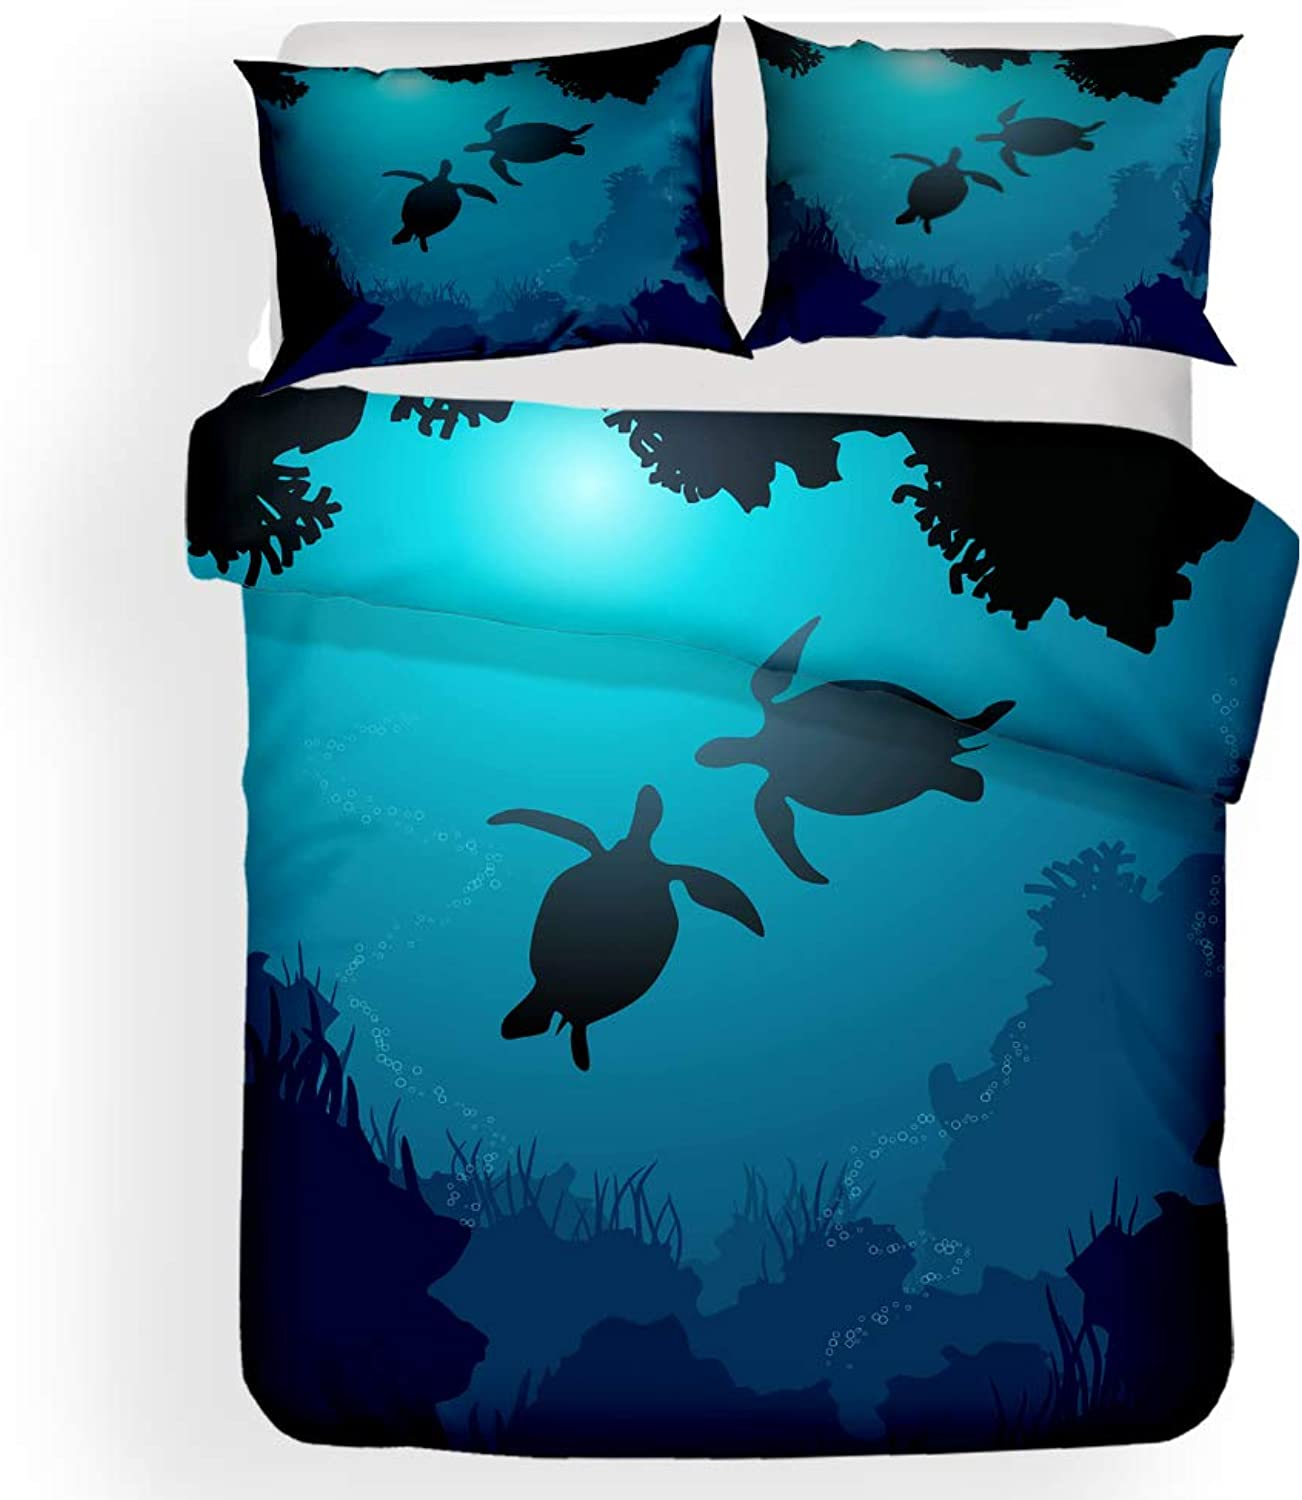 XINGYE 3D Sea Turtle Bedding Turtle Duvet Cover Set Bedspreads for Teens (no Comforter Include) (1, Twin)